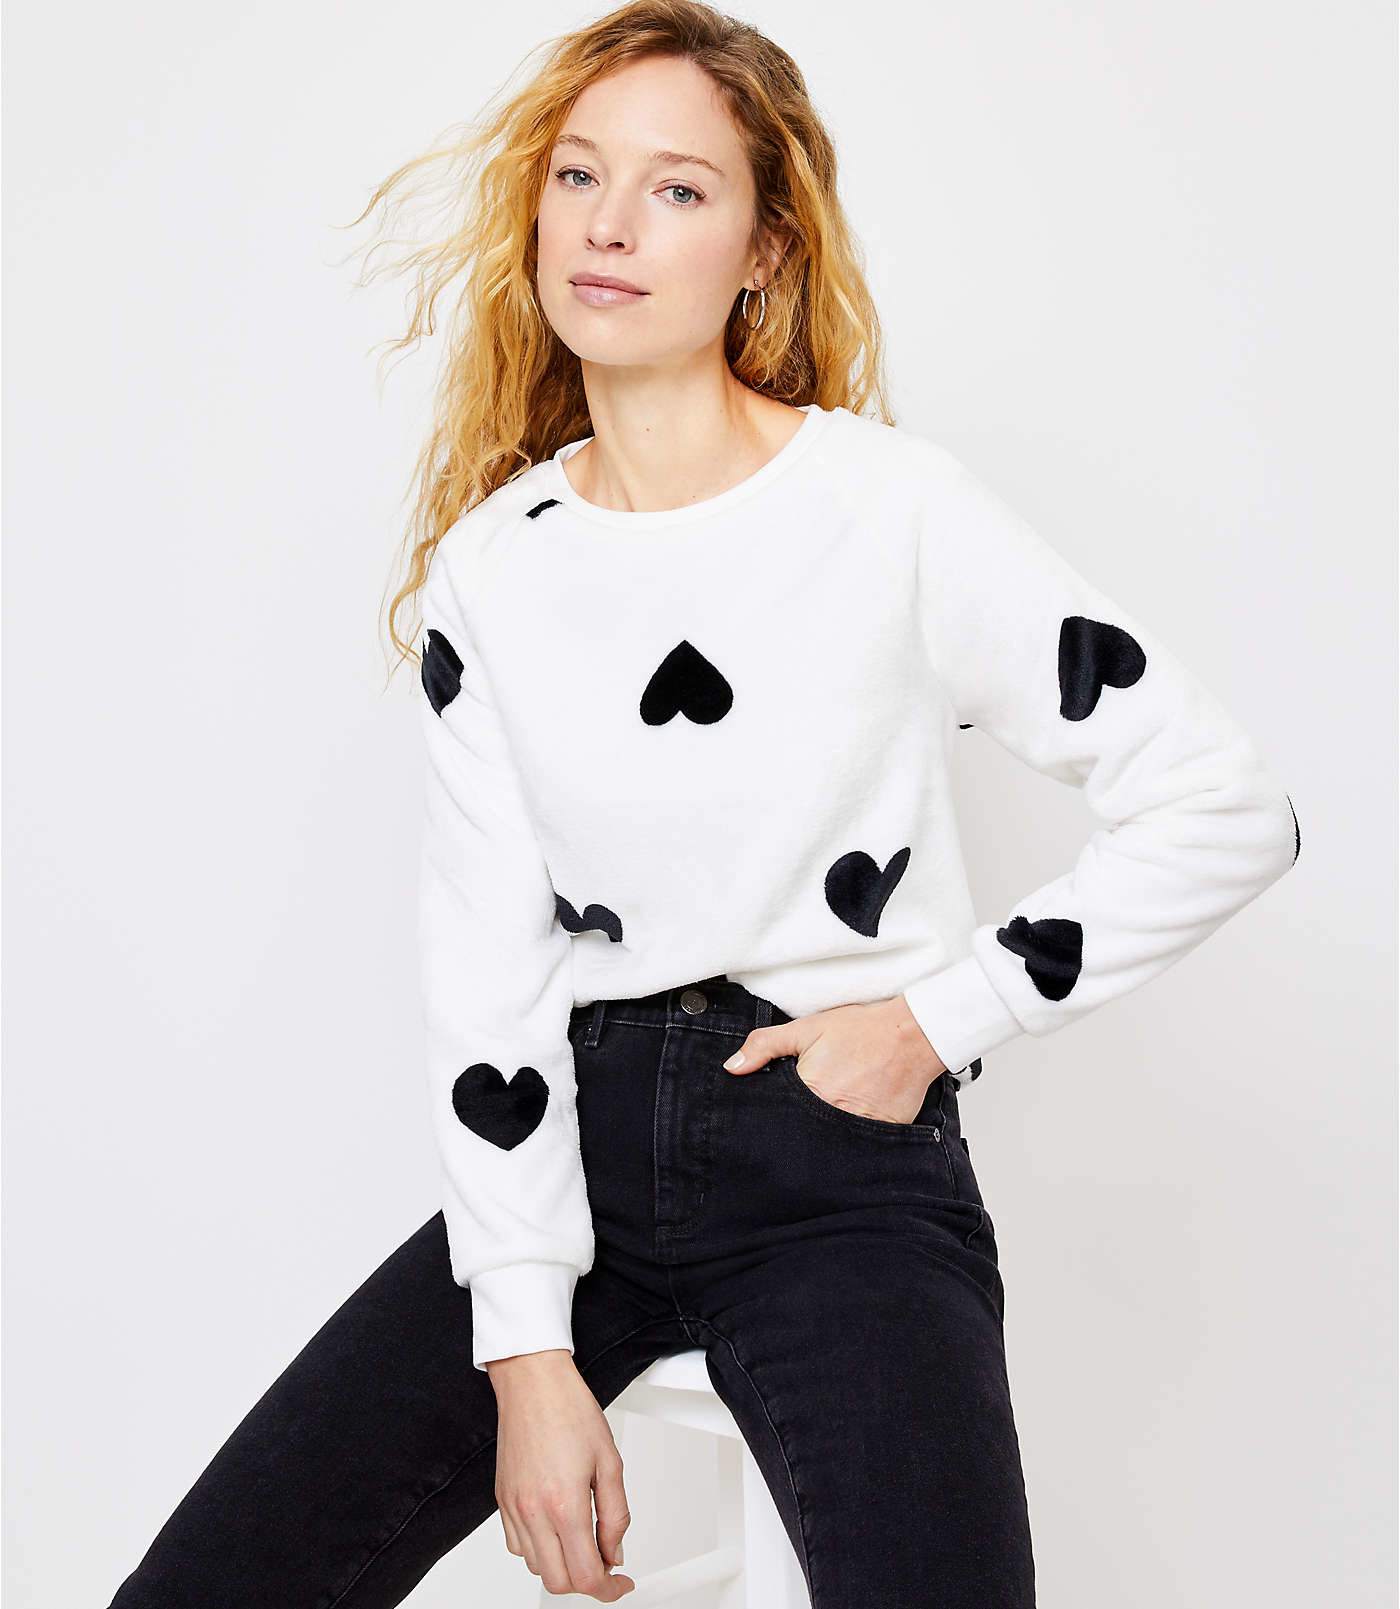 Model wearing the white sweatshirt with black novelty print hearts